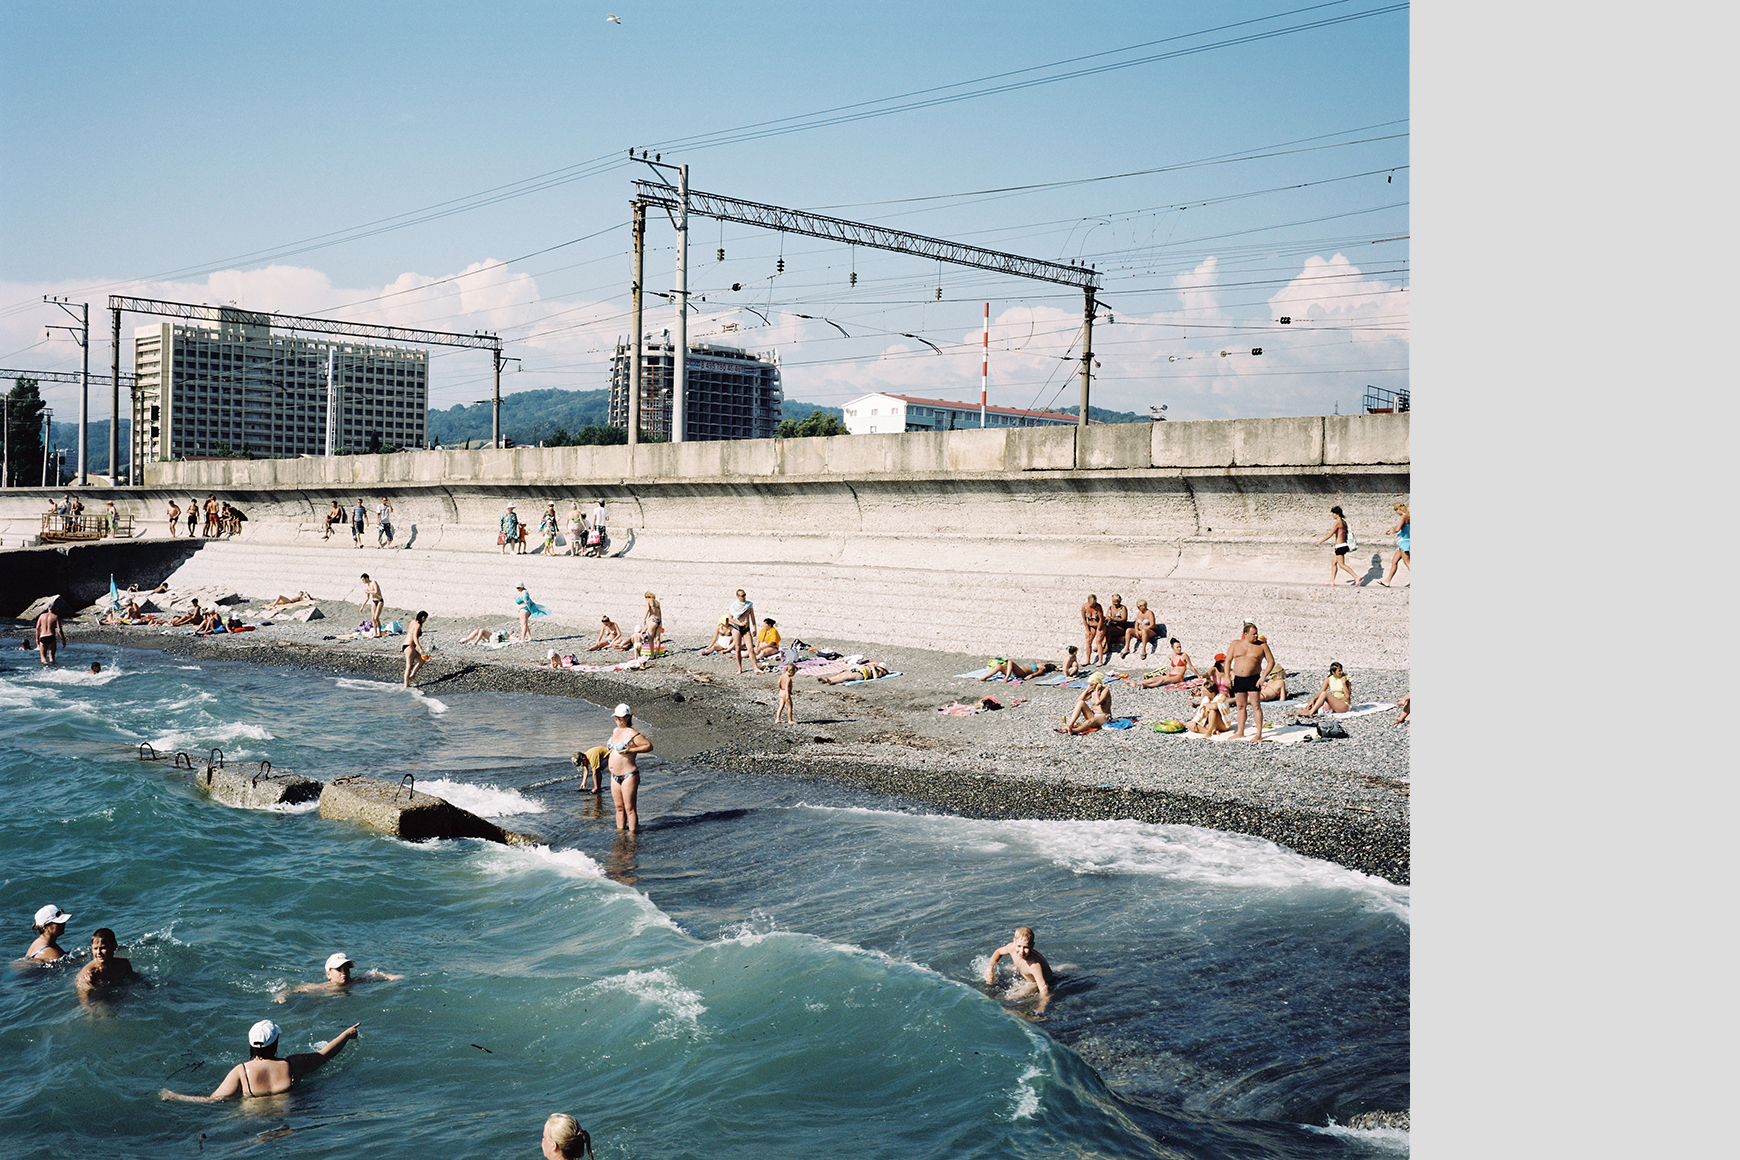 © Rob Hornstra / Flatland Gallery. From: An Atlas of War and Tourism in the Caucasus (Aperture, 2013).